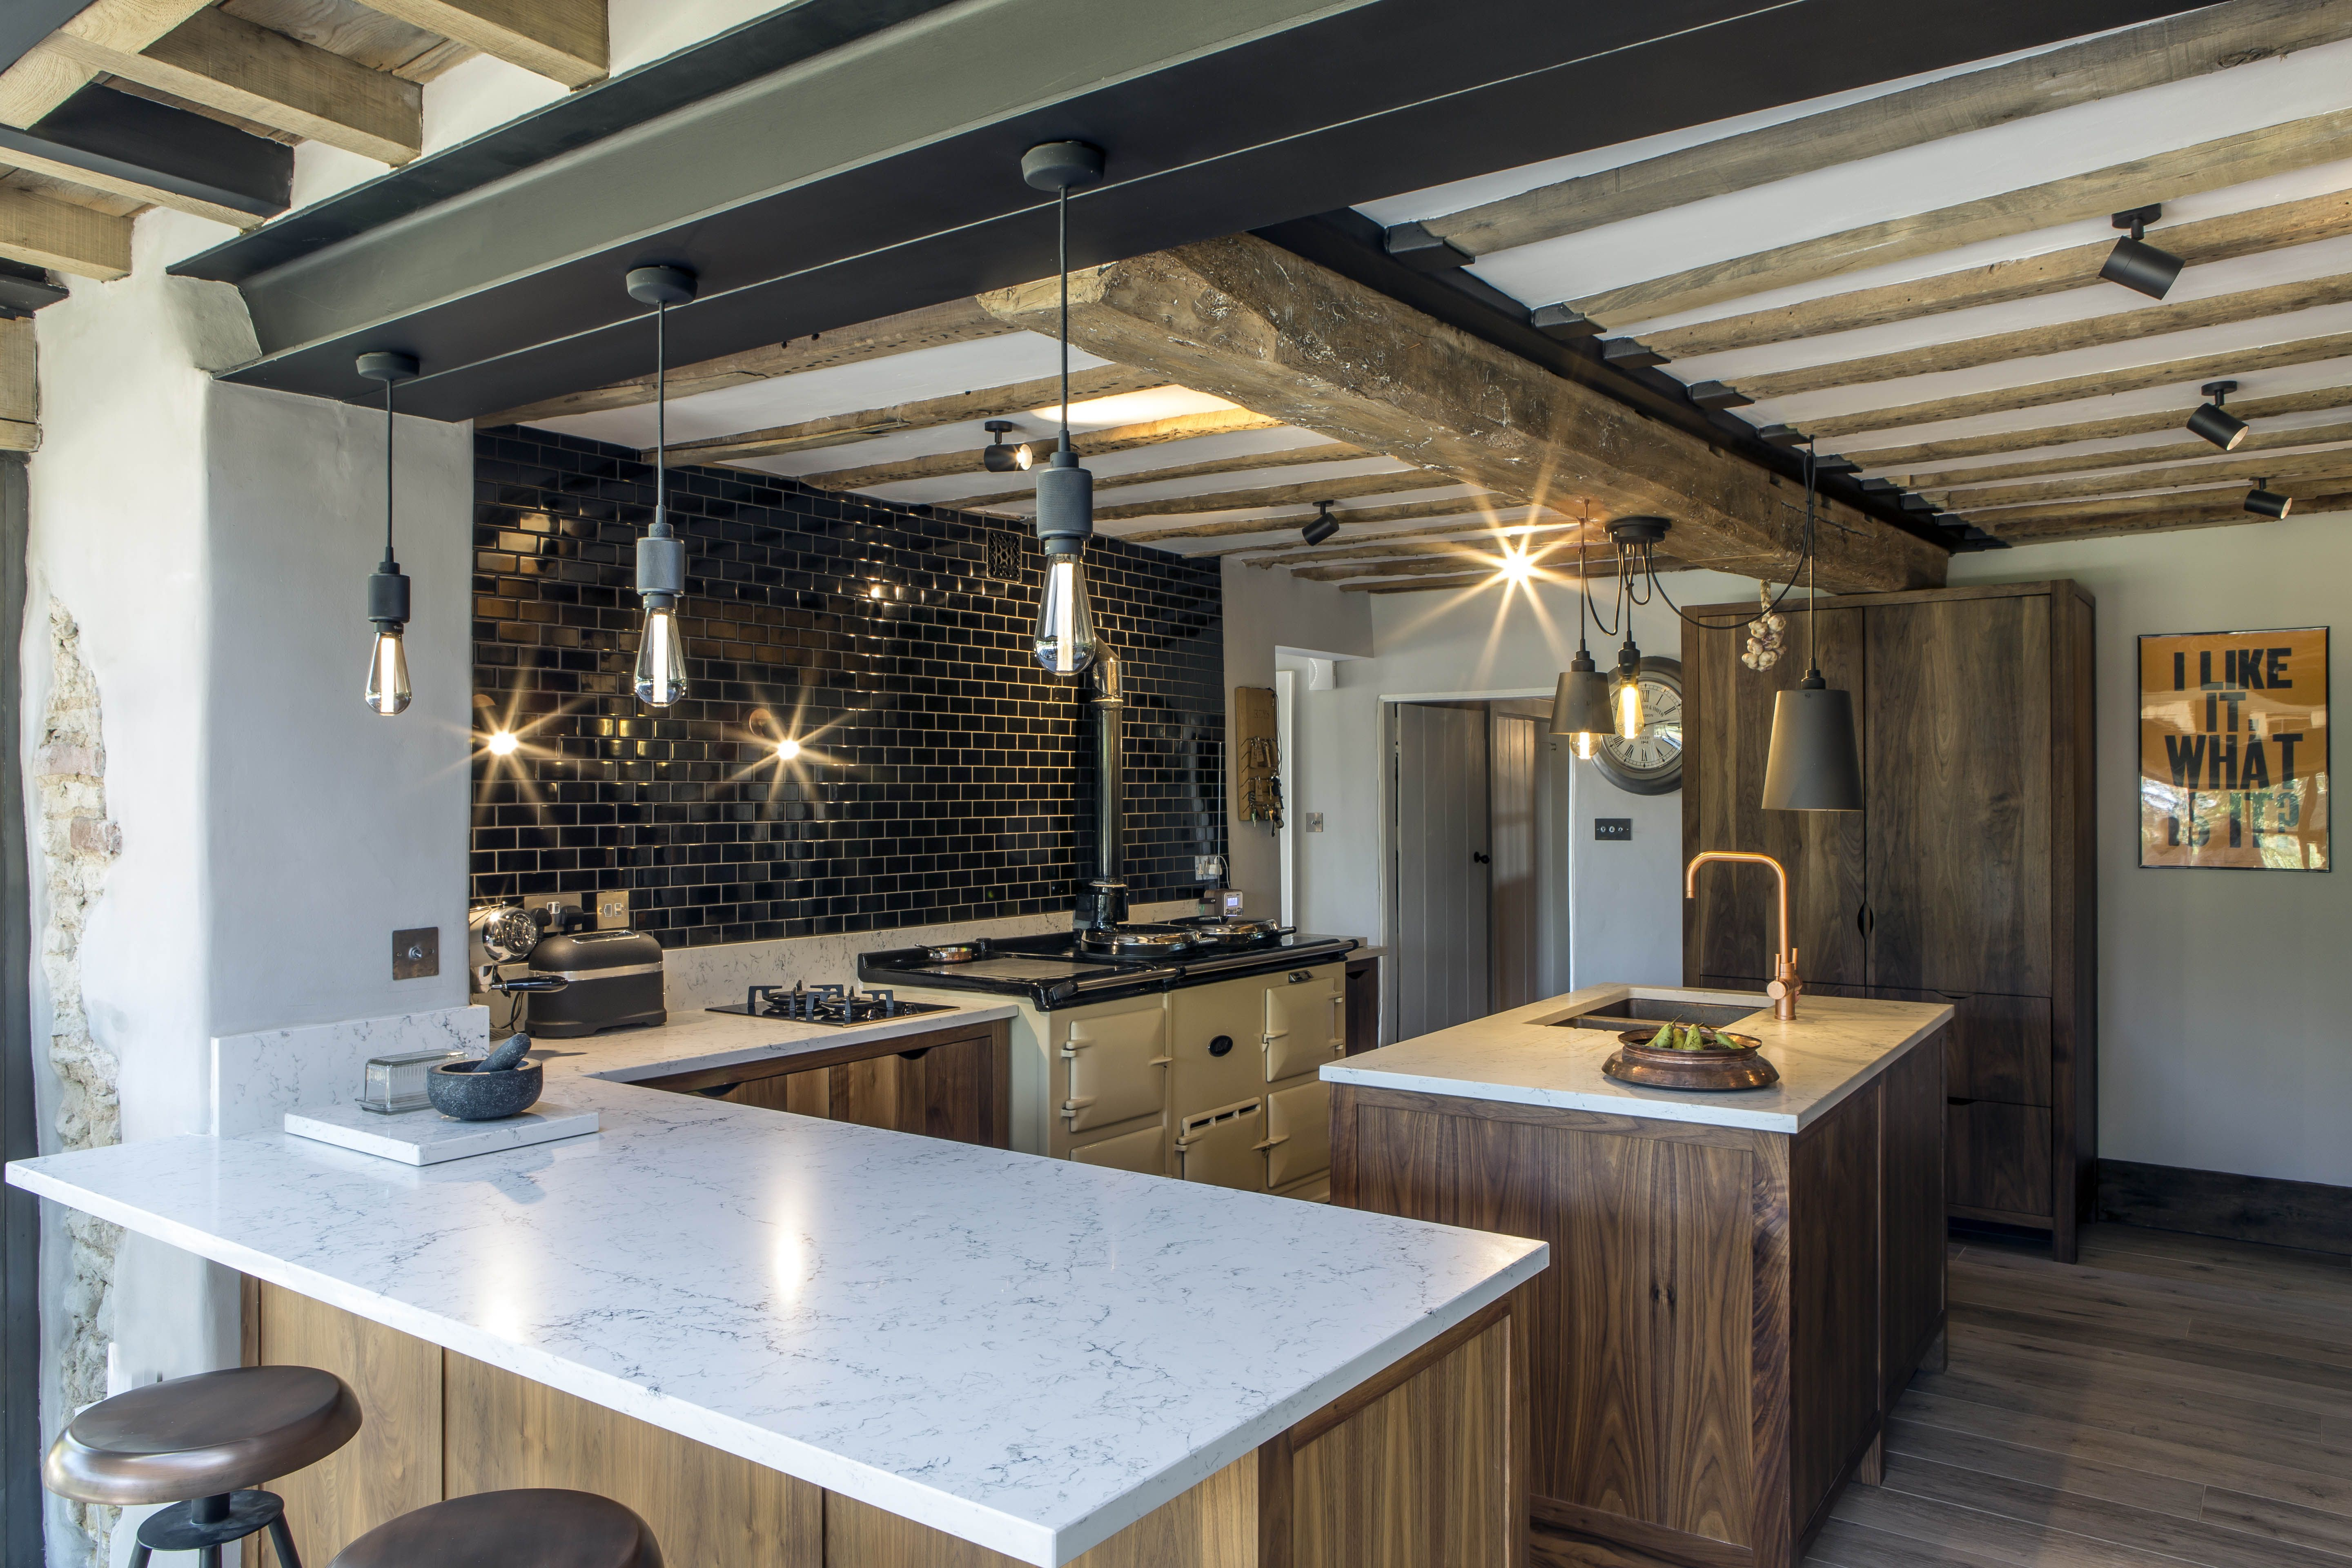 Country Living Modern Rustic Style Kitchen And Open Plan Dining Room Buster And Punch Lighting And Bespoke Walnut Kitchen With Cuisines Maison Maison Cuisine